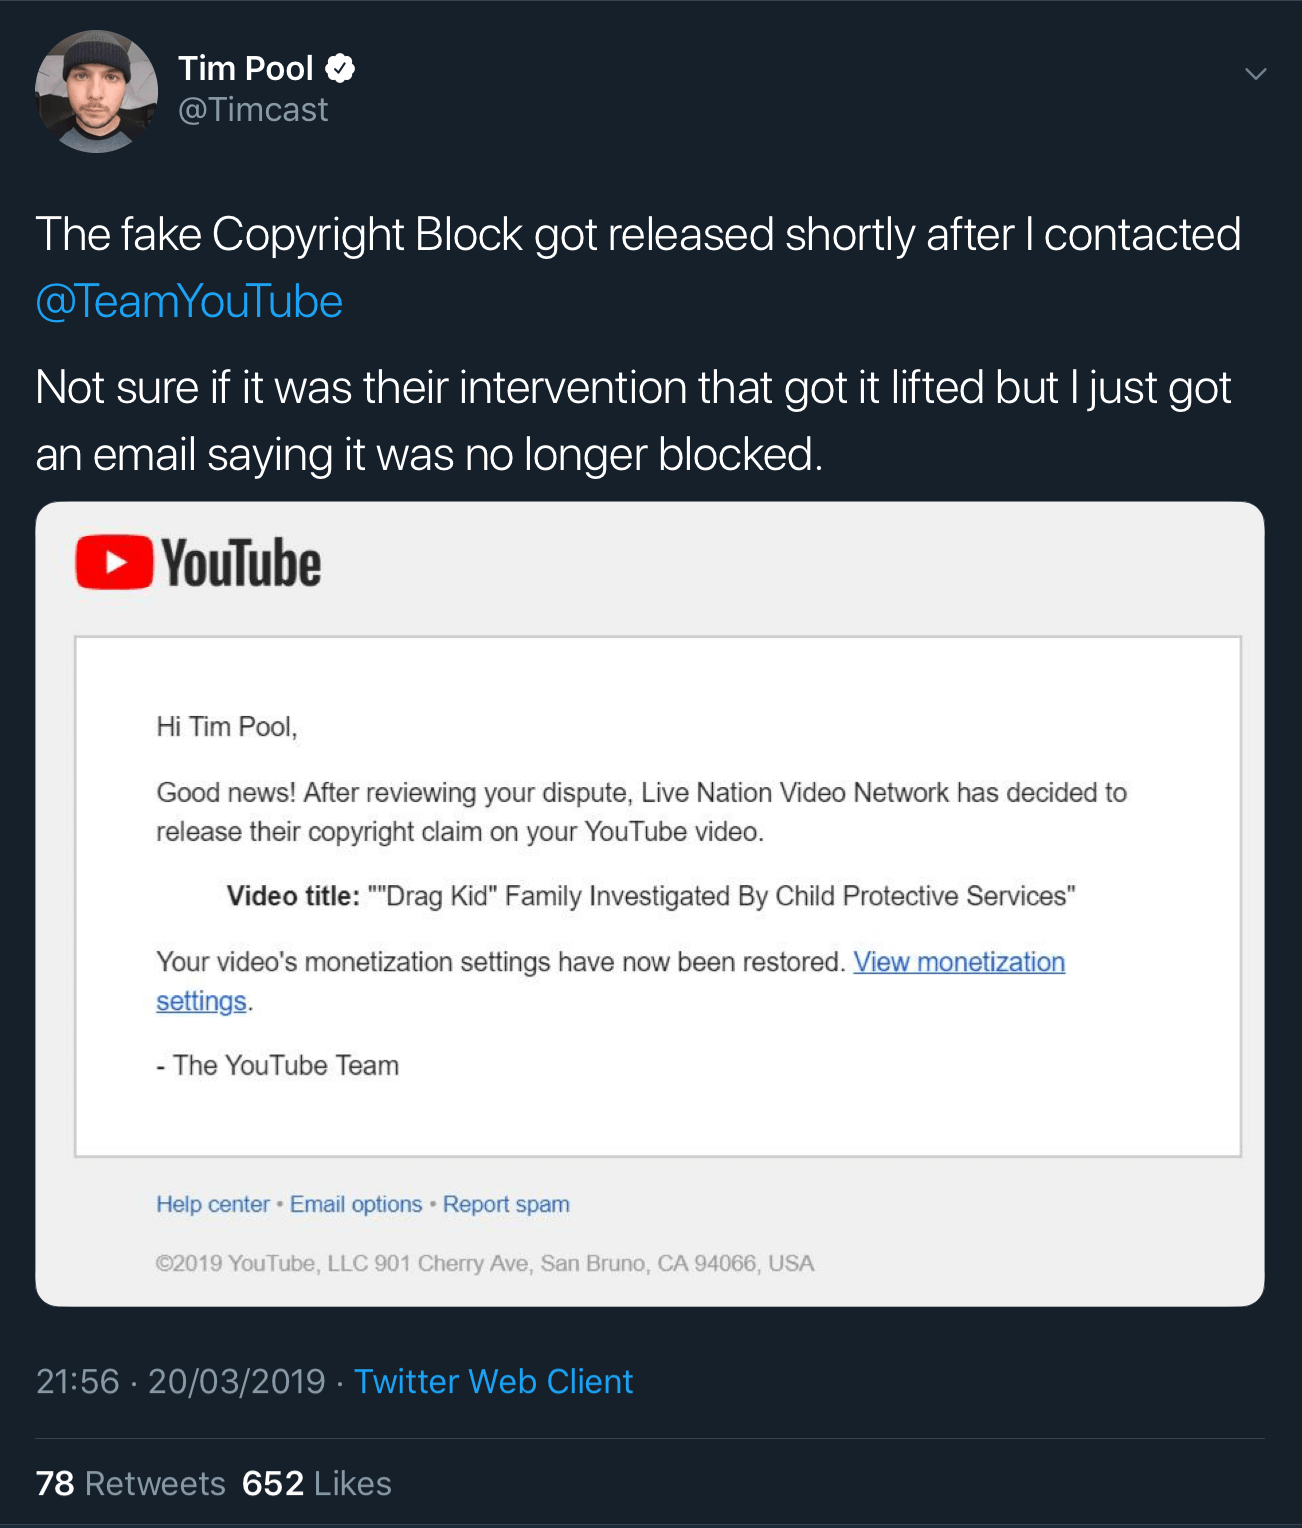 A tweet showing that the fake copyright claim against Tim Pool's video has been released